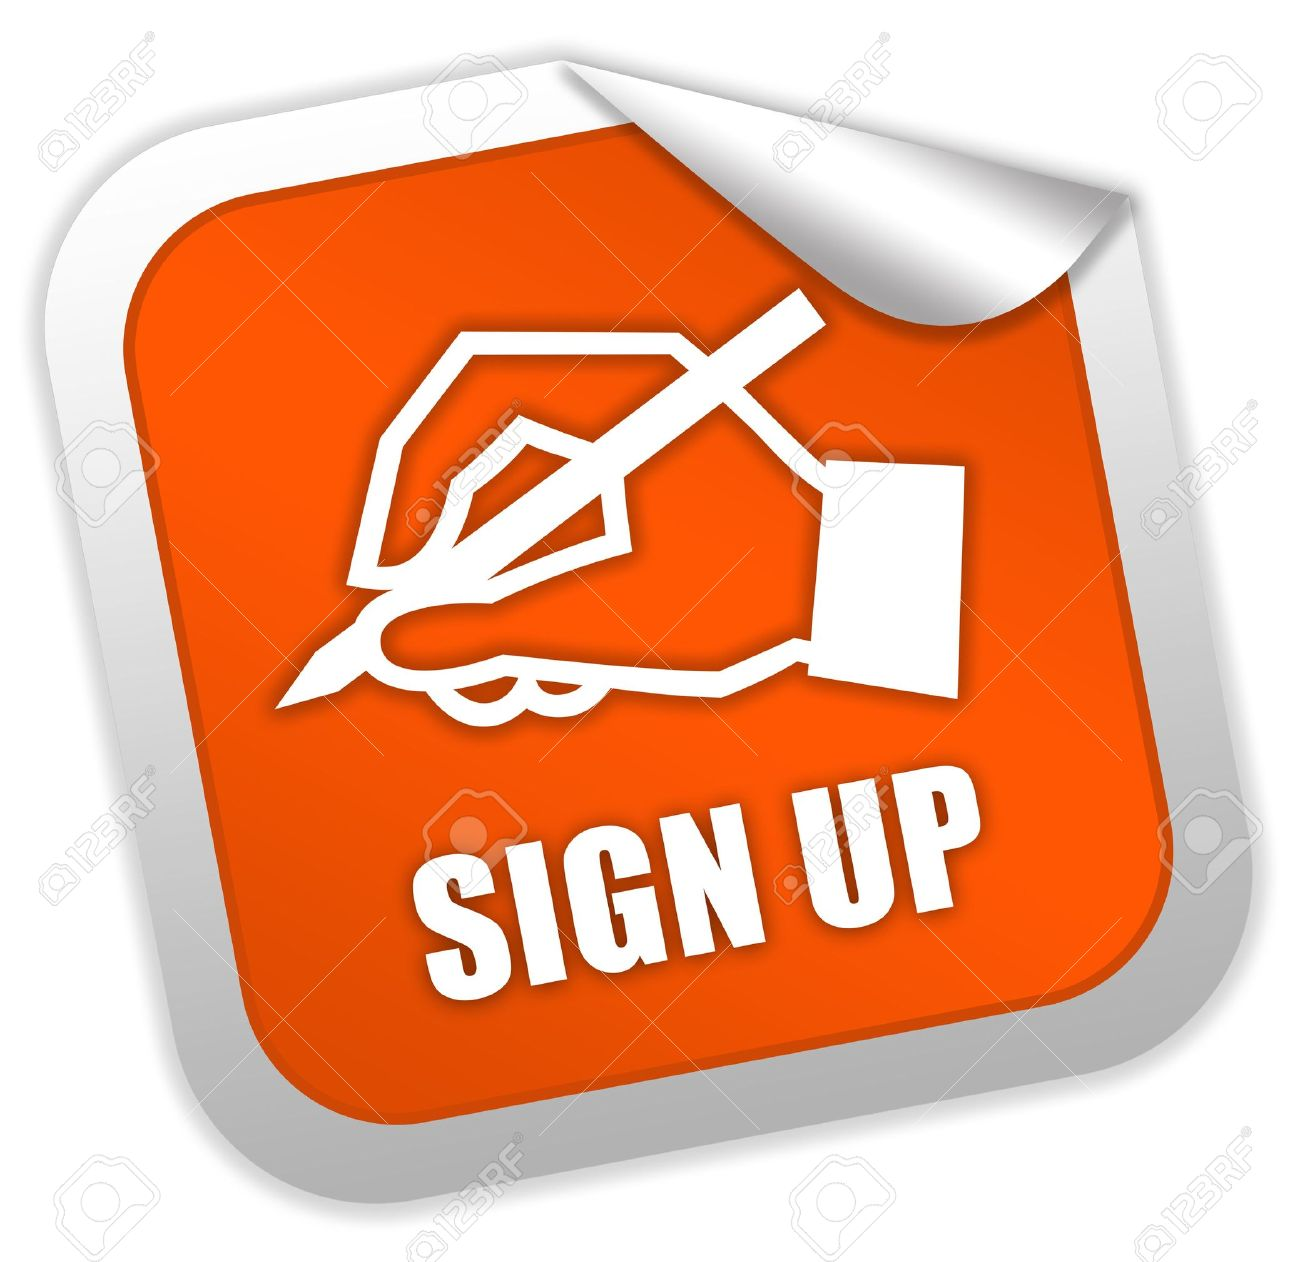 Sign up icon Stock Photo - 7014844